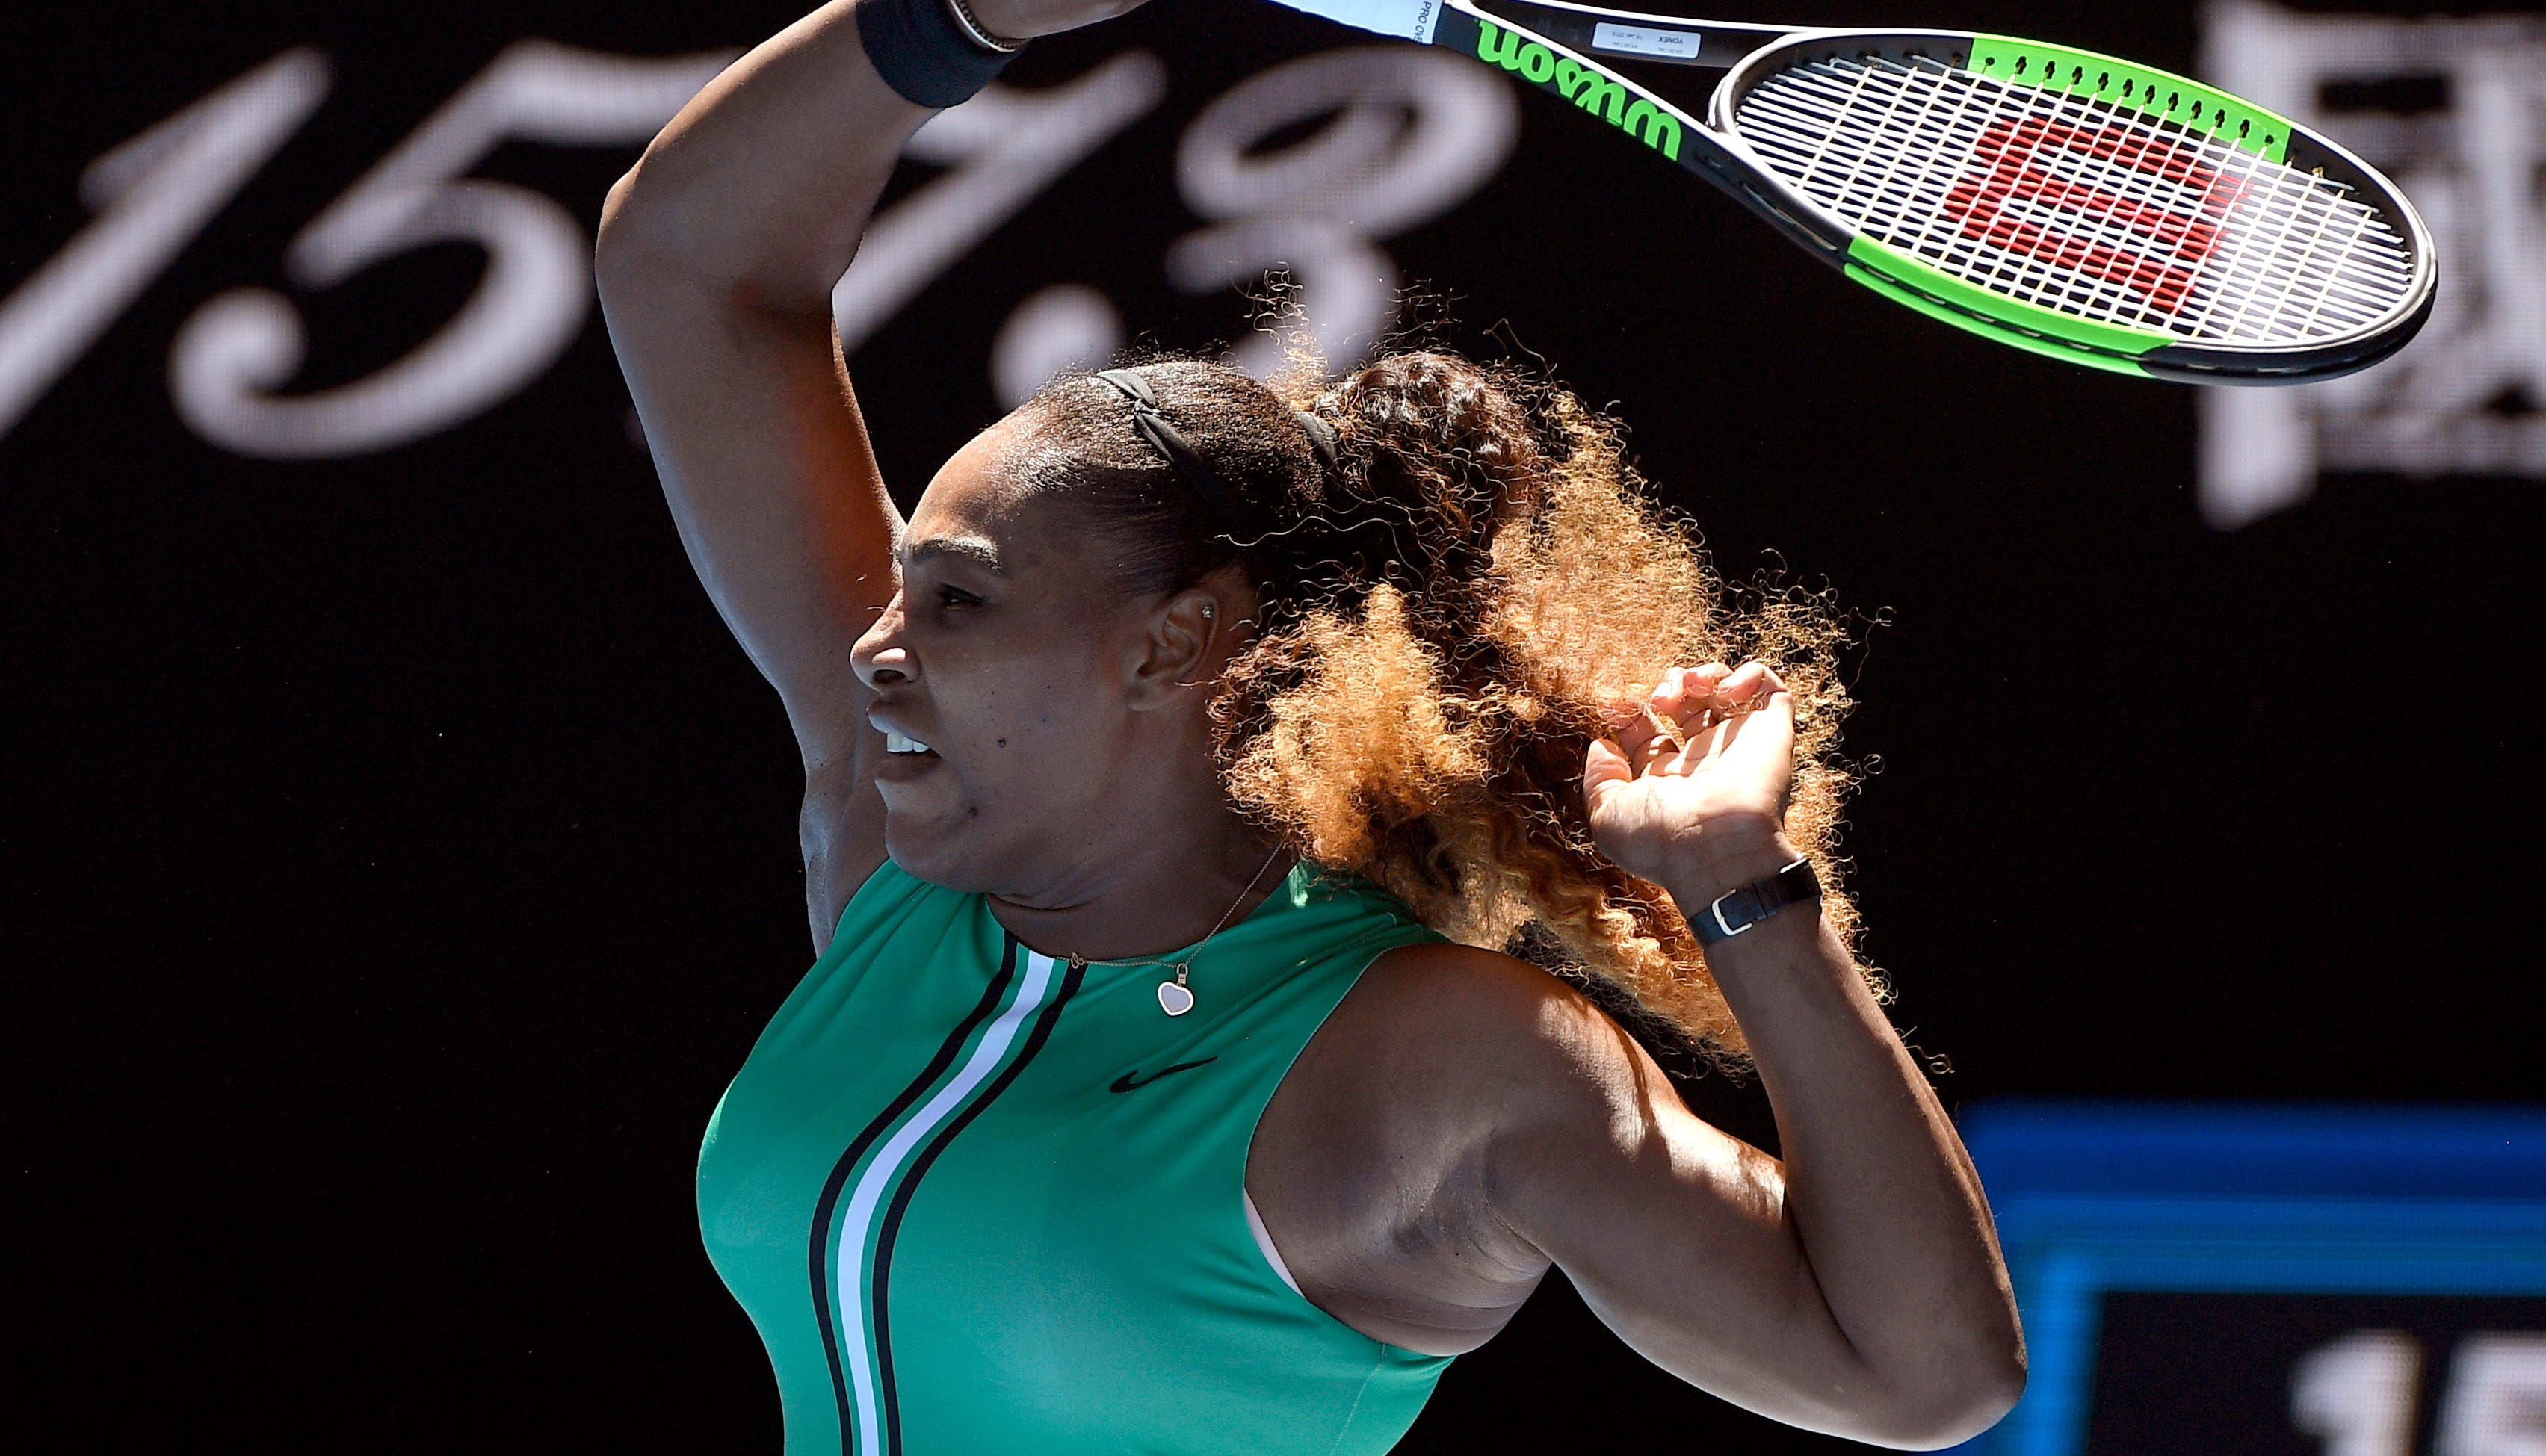 Serena Williams makes a forehand return to Dayana Yastremska during their third-round match at the Australian Open.